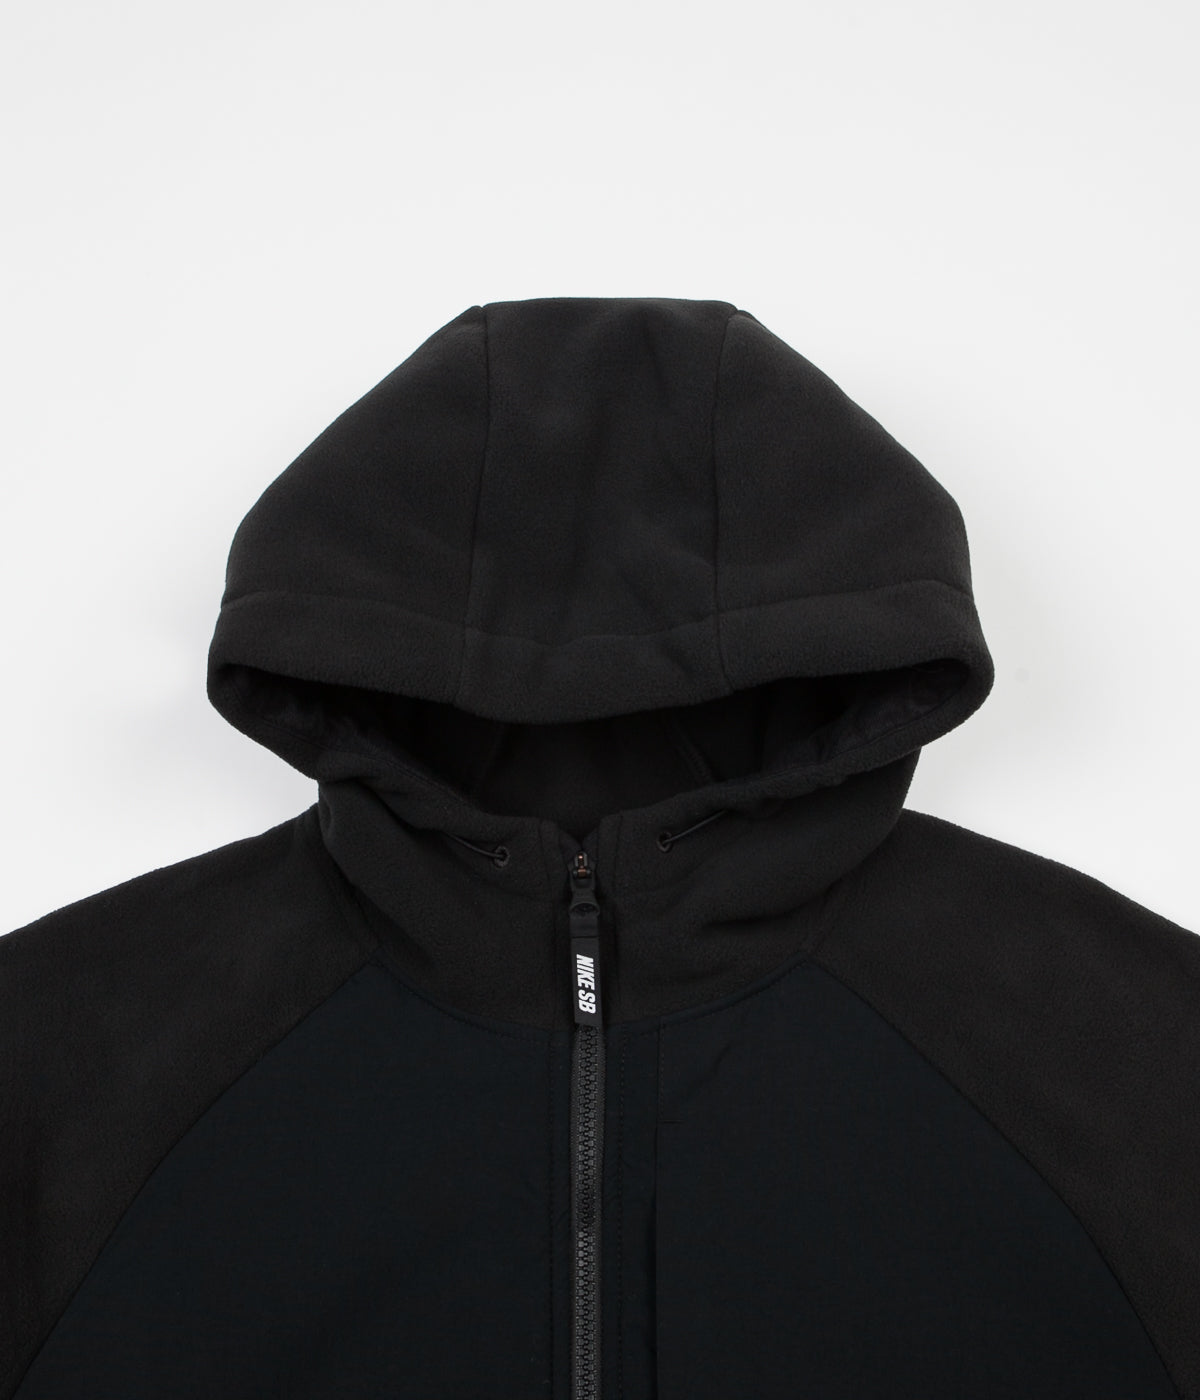 fde72bd8ae91b ... Nike SB Polartec Winterized Full Zip Hoodie - Black ...